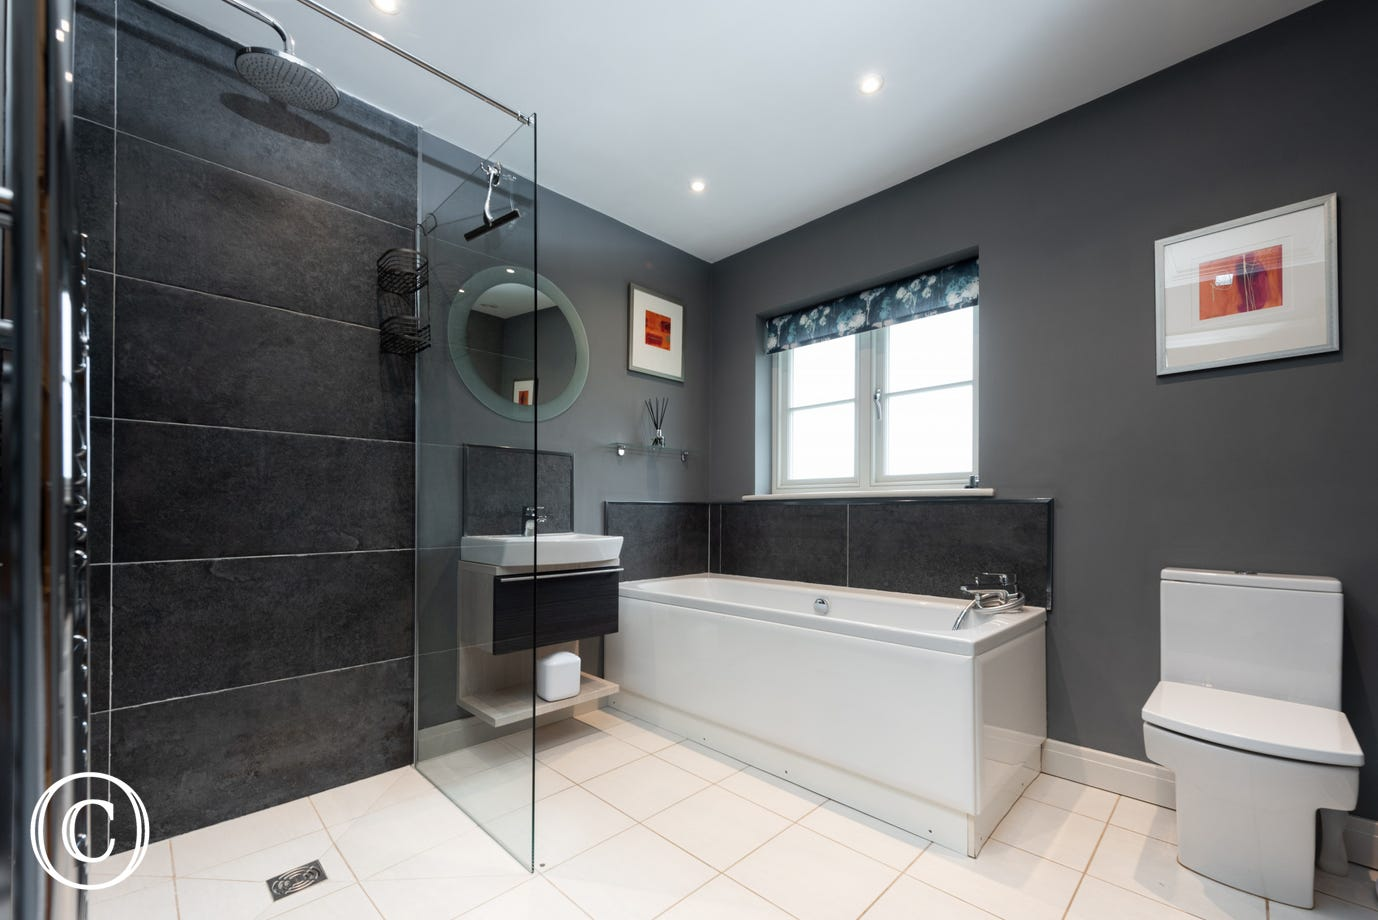 Bathroom with bath, WC, wash basin & walk-in shower